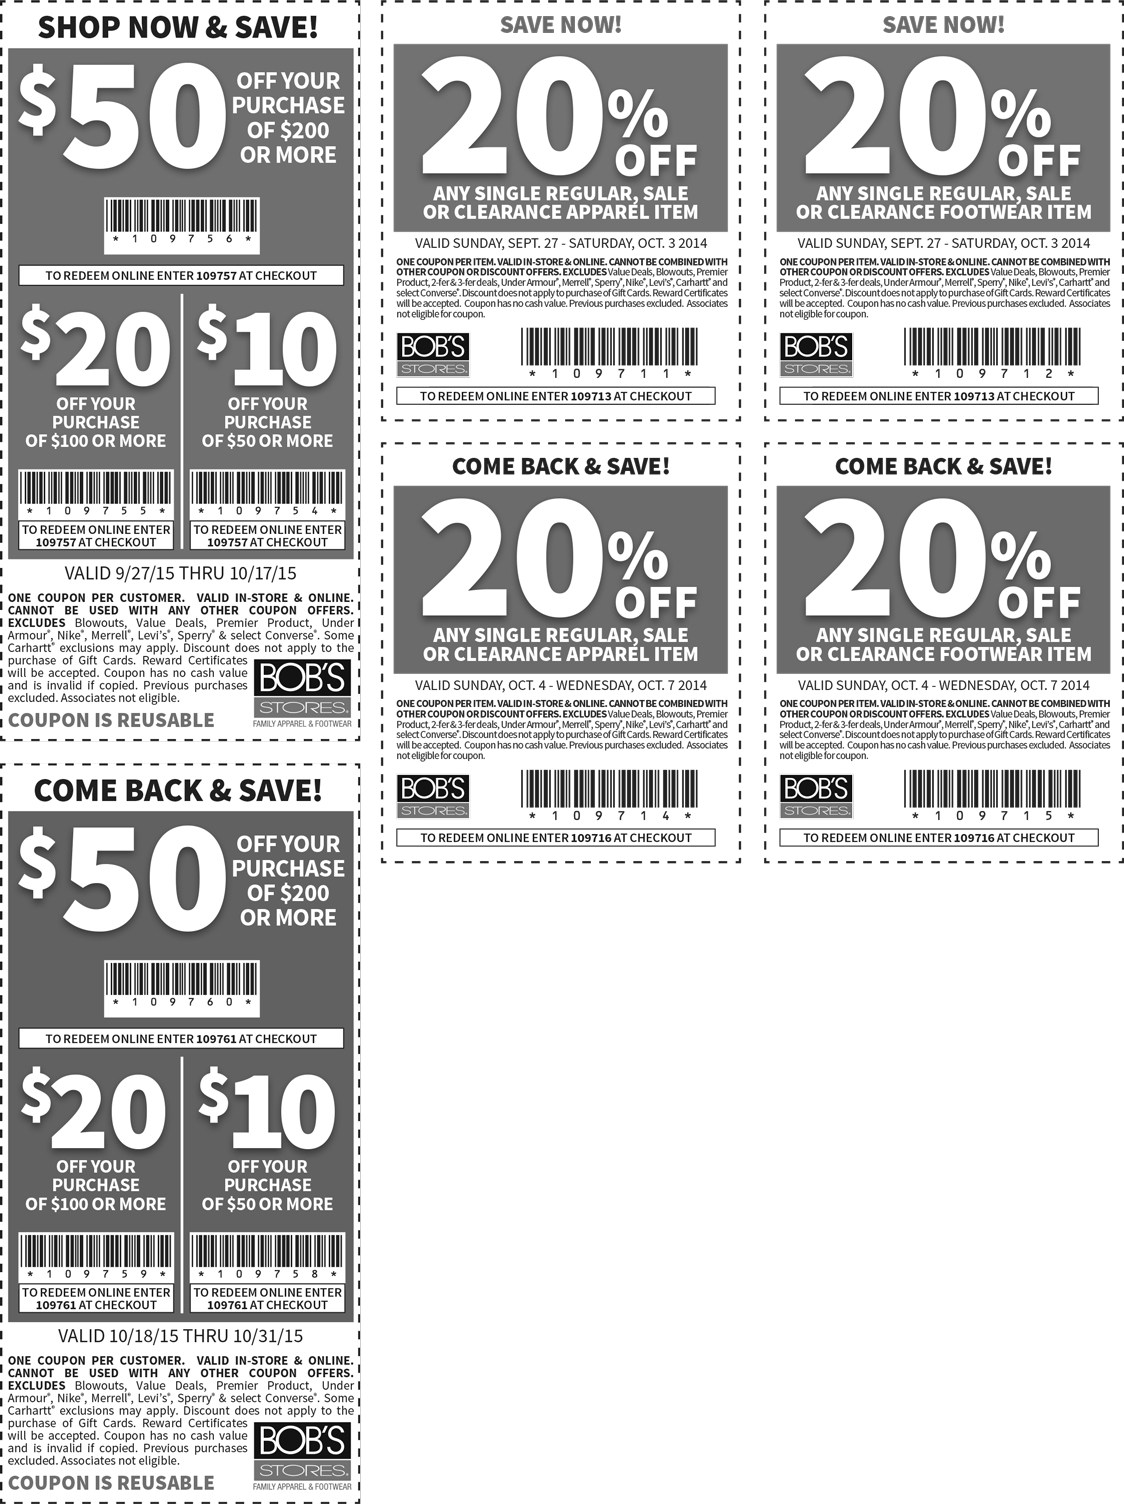 Bobs Stores Coupon June 2017 $10 off $50 & more at Bobs Stores, or online via promo code 109757